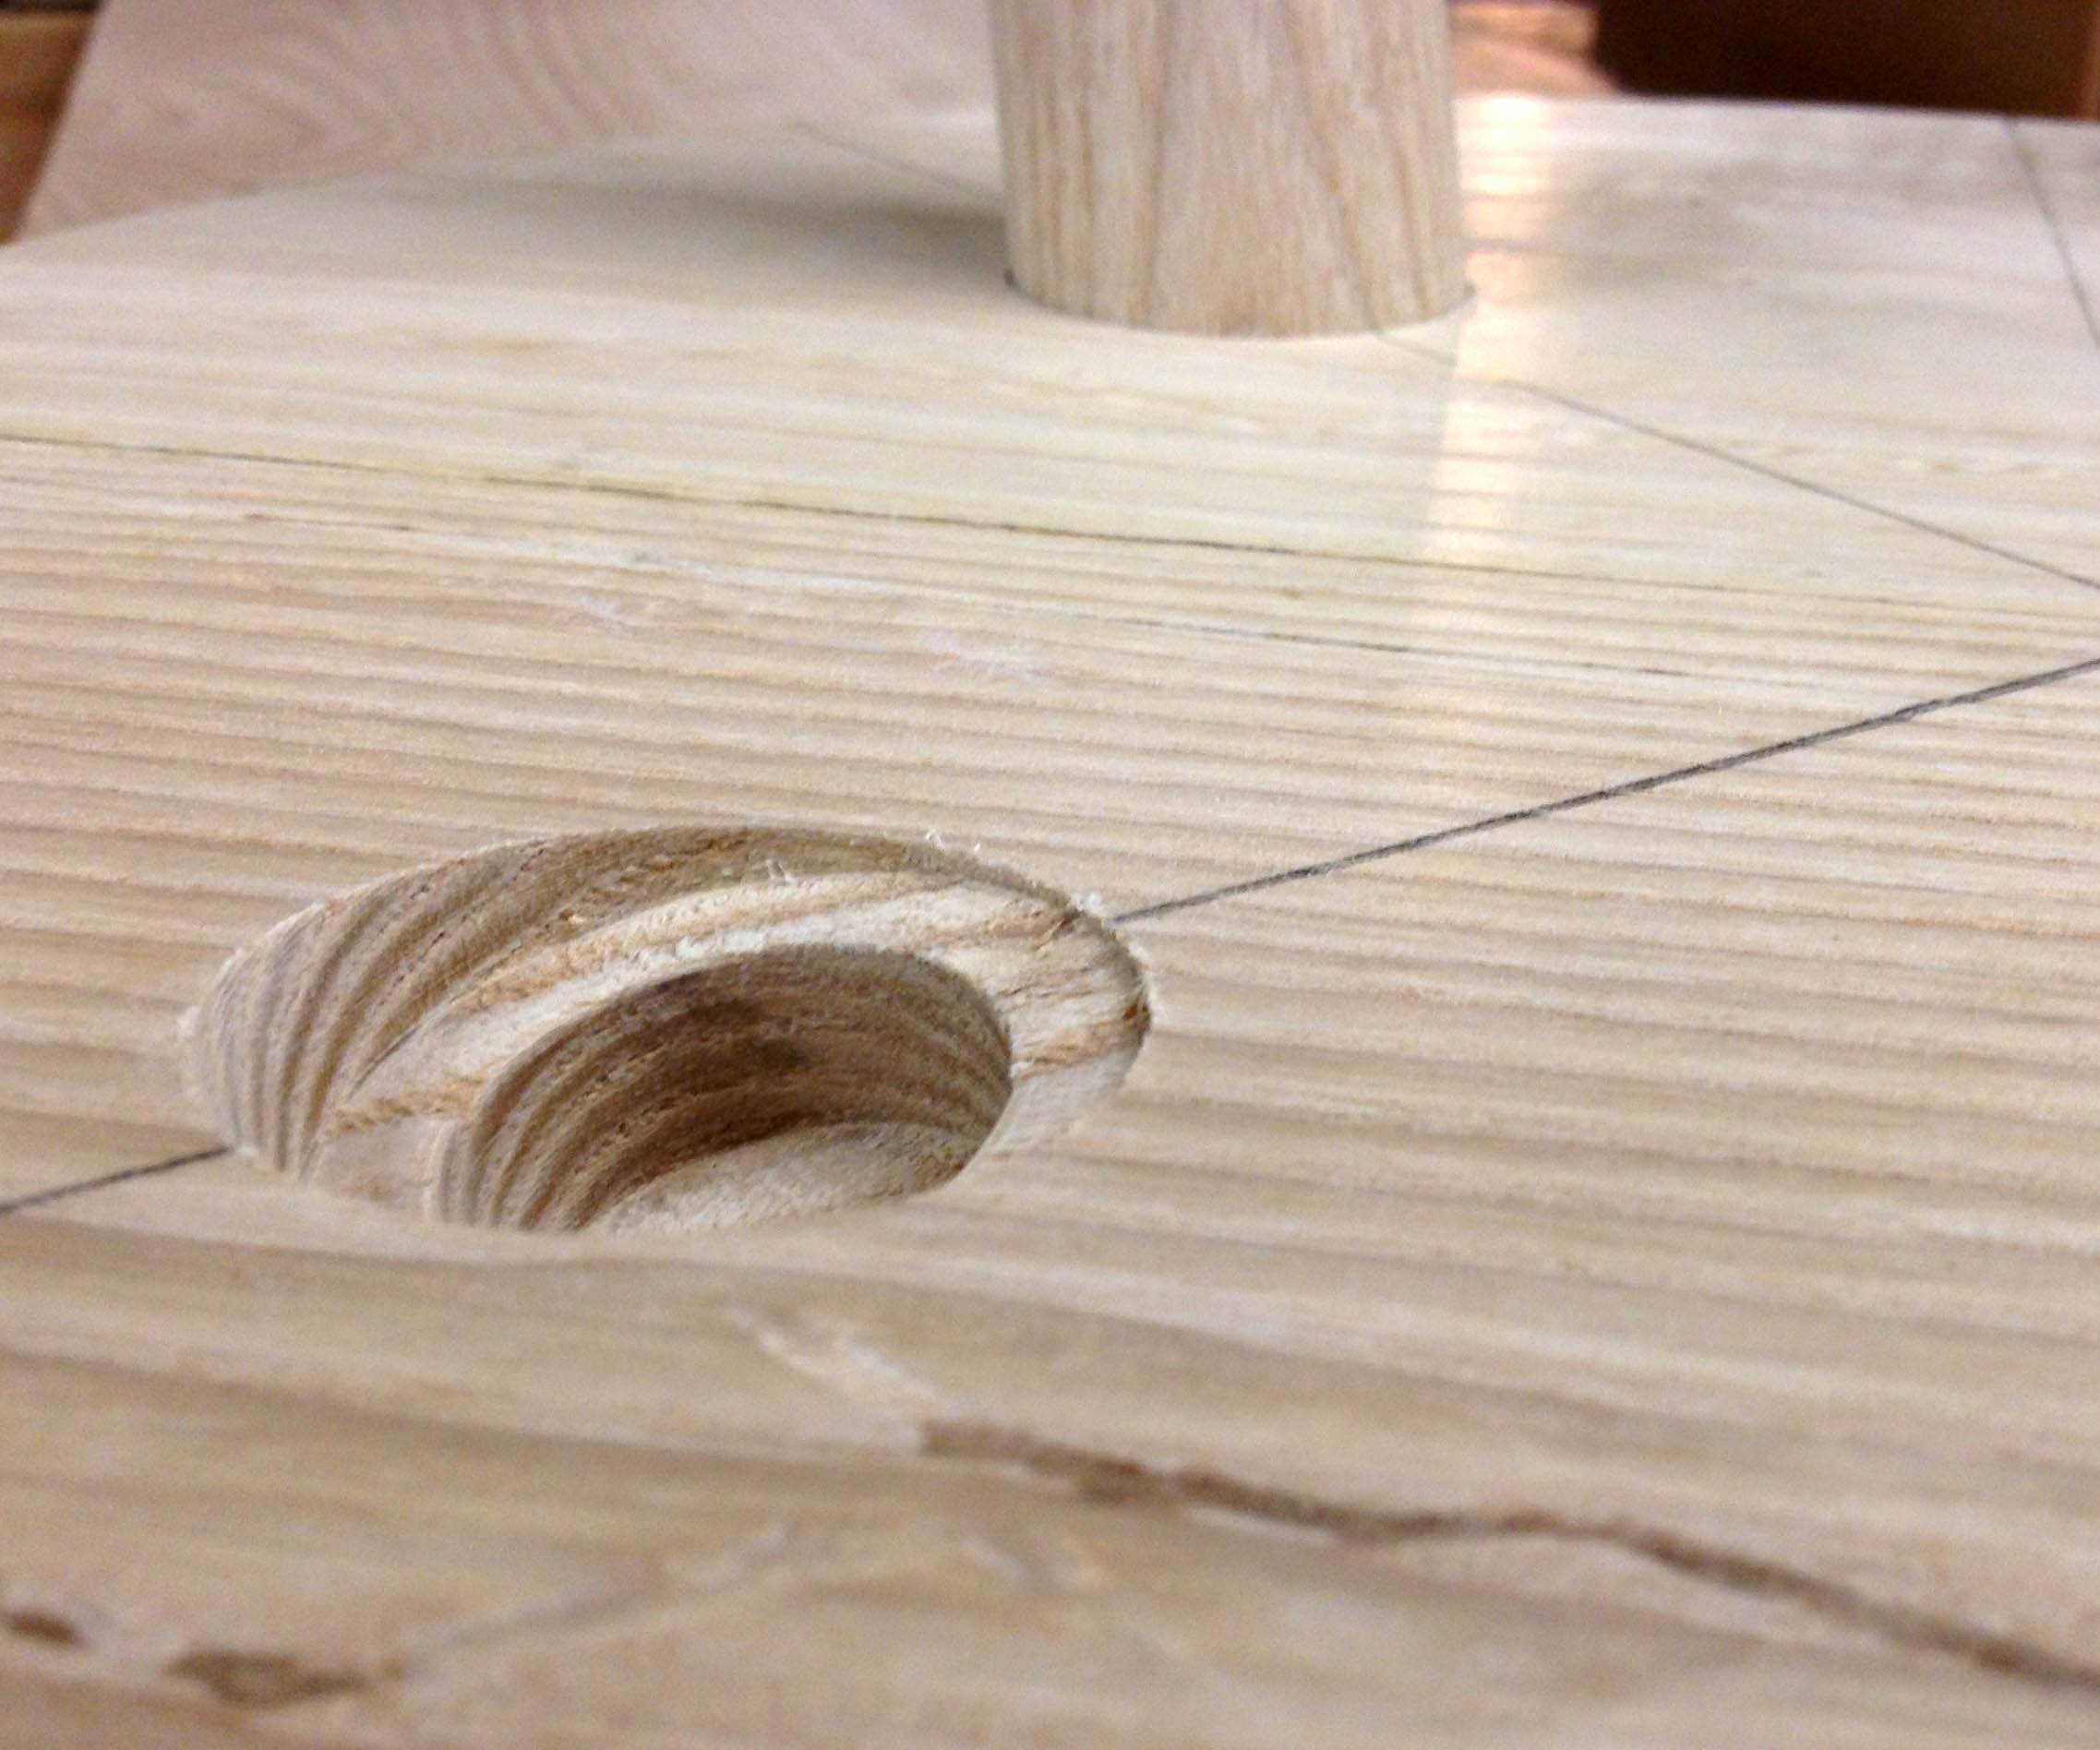 Easy Angled Mortises on the Drill Press - (Attaching Round Legs at an Angle)